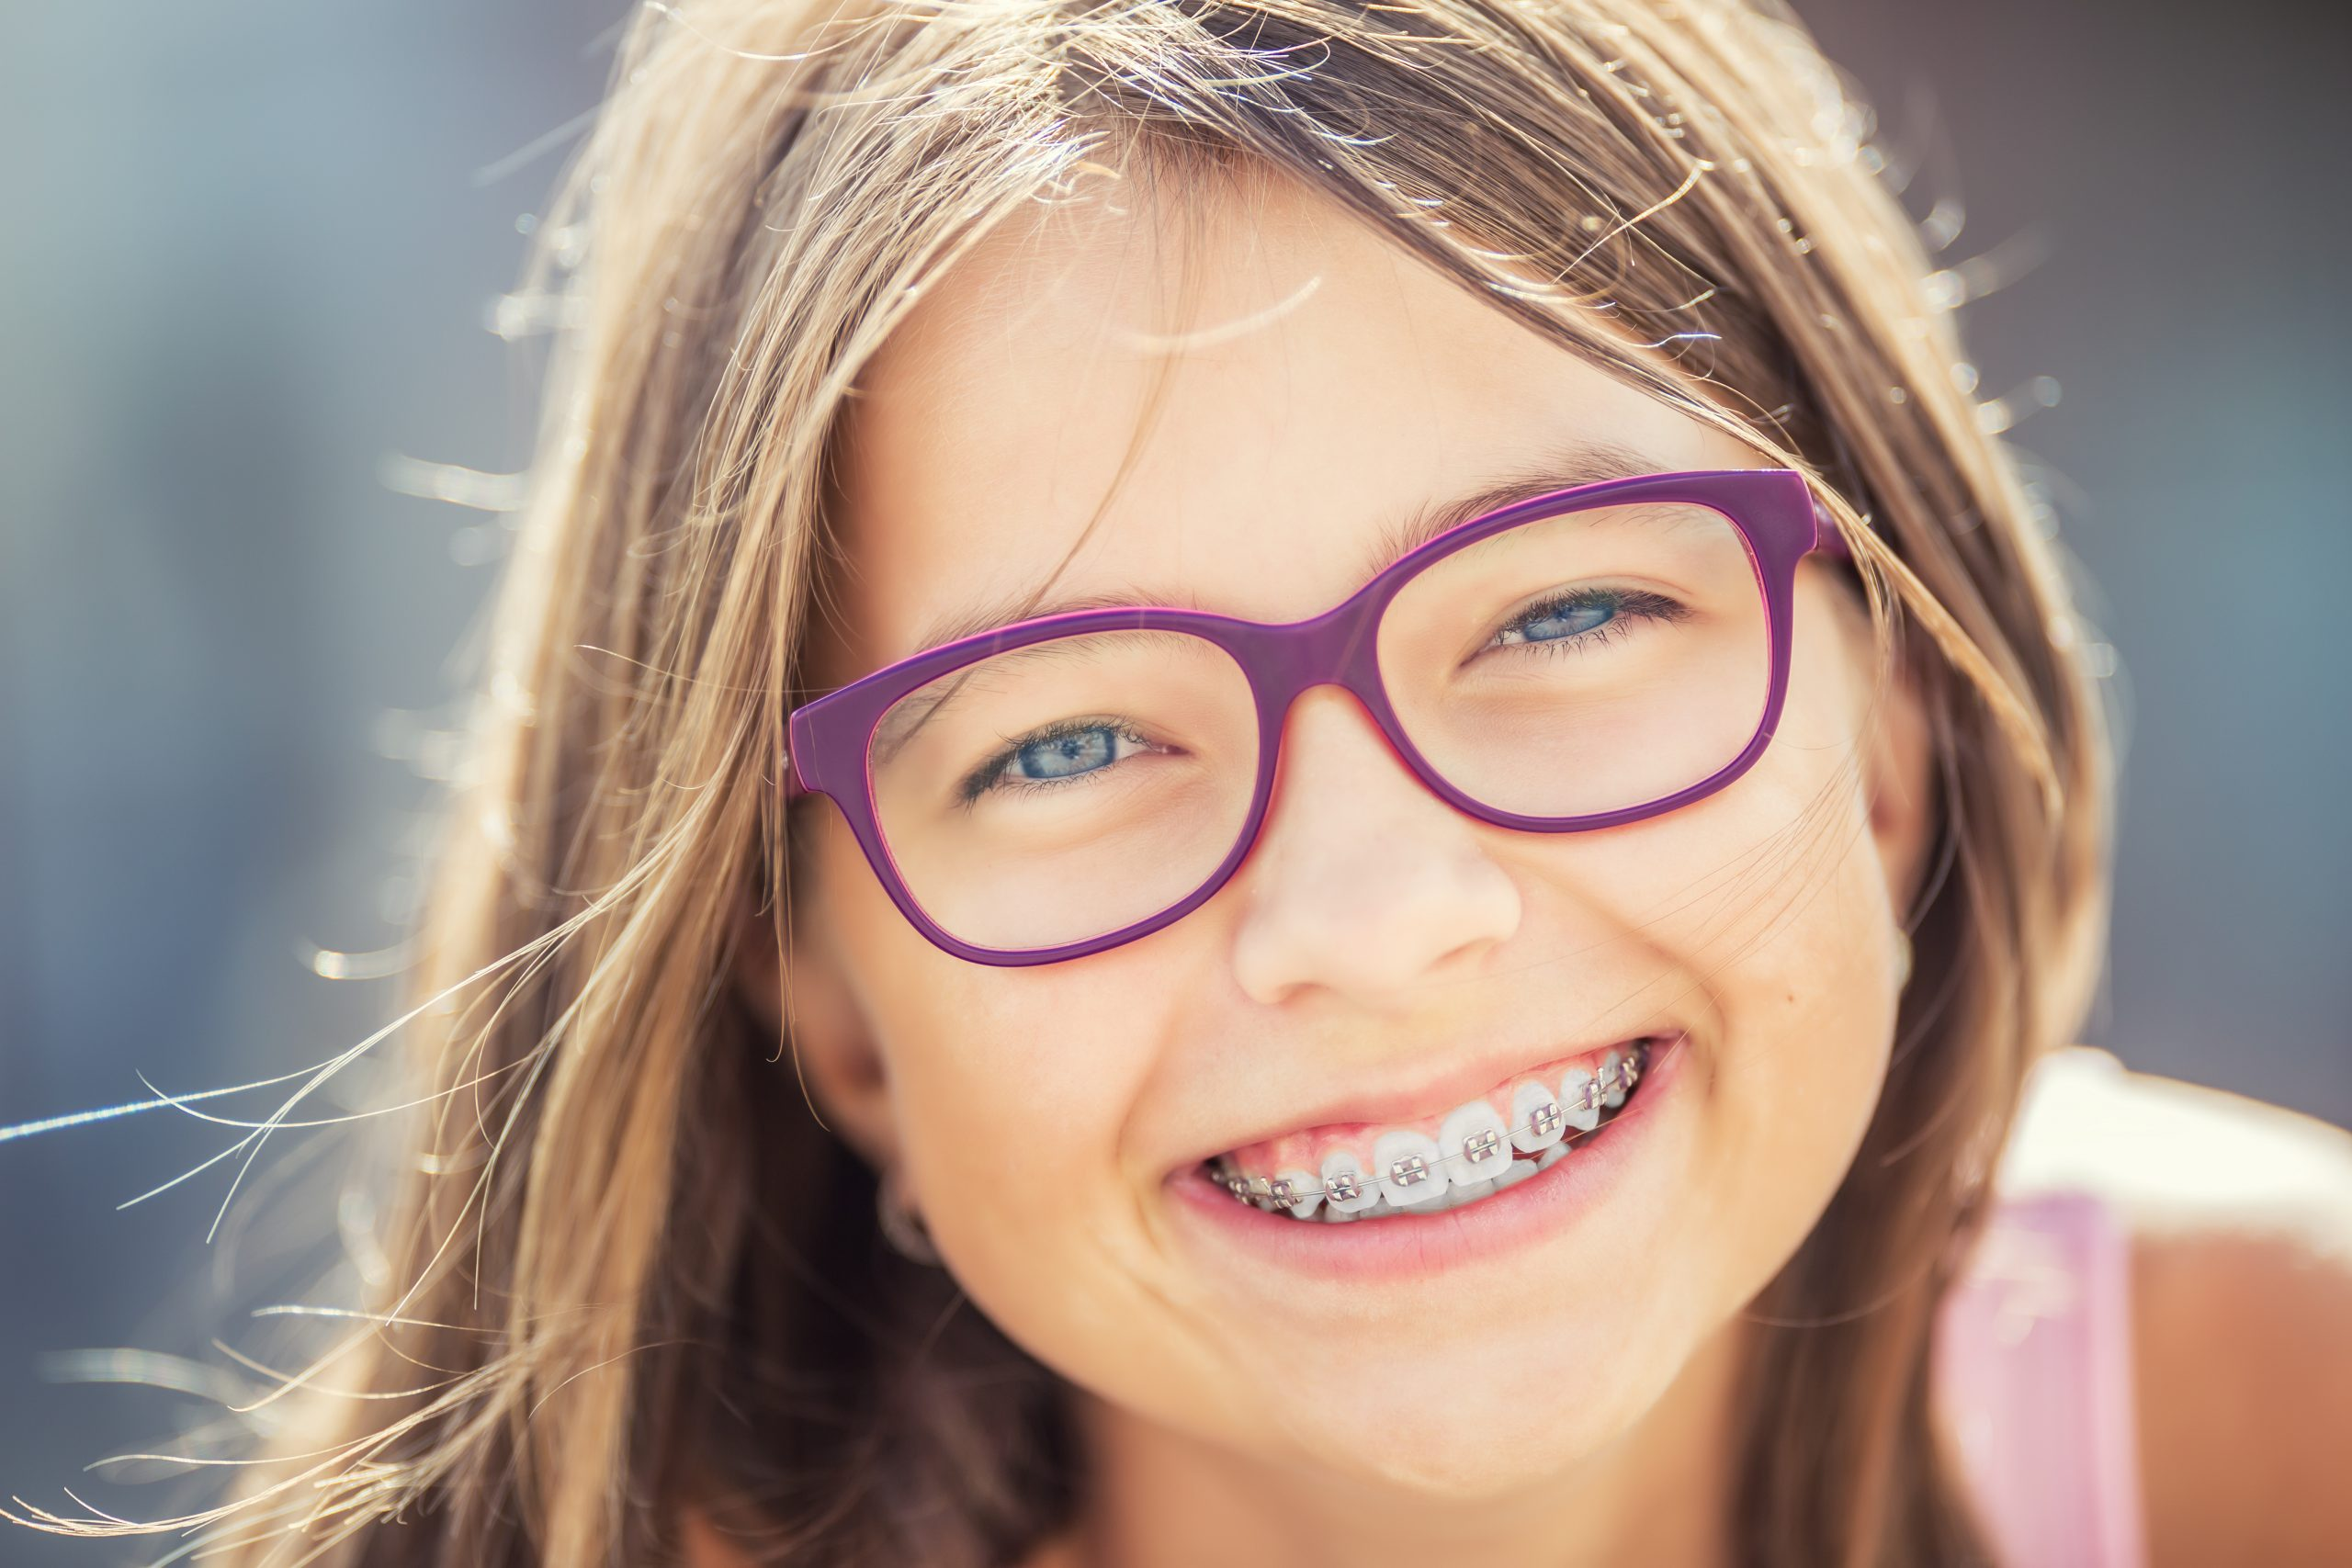 Happy smiling girl with dental braces and glasses. Young cute caucasian blond girl wearing teeth braces and glasses